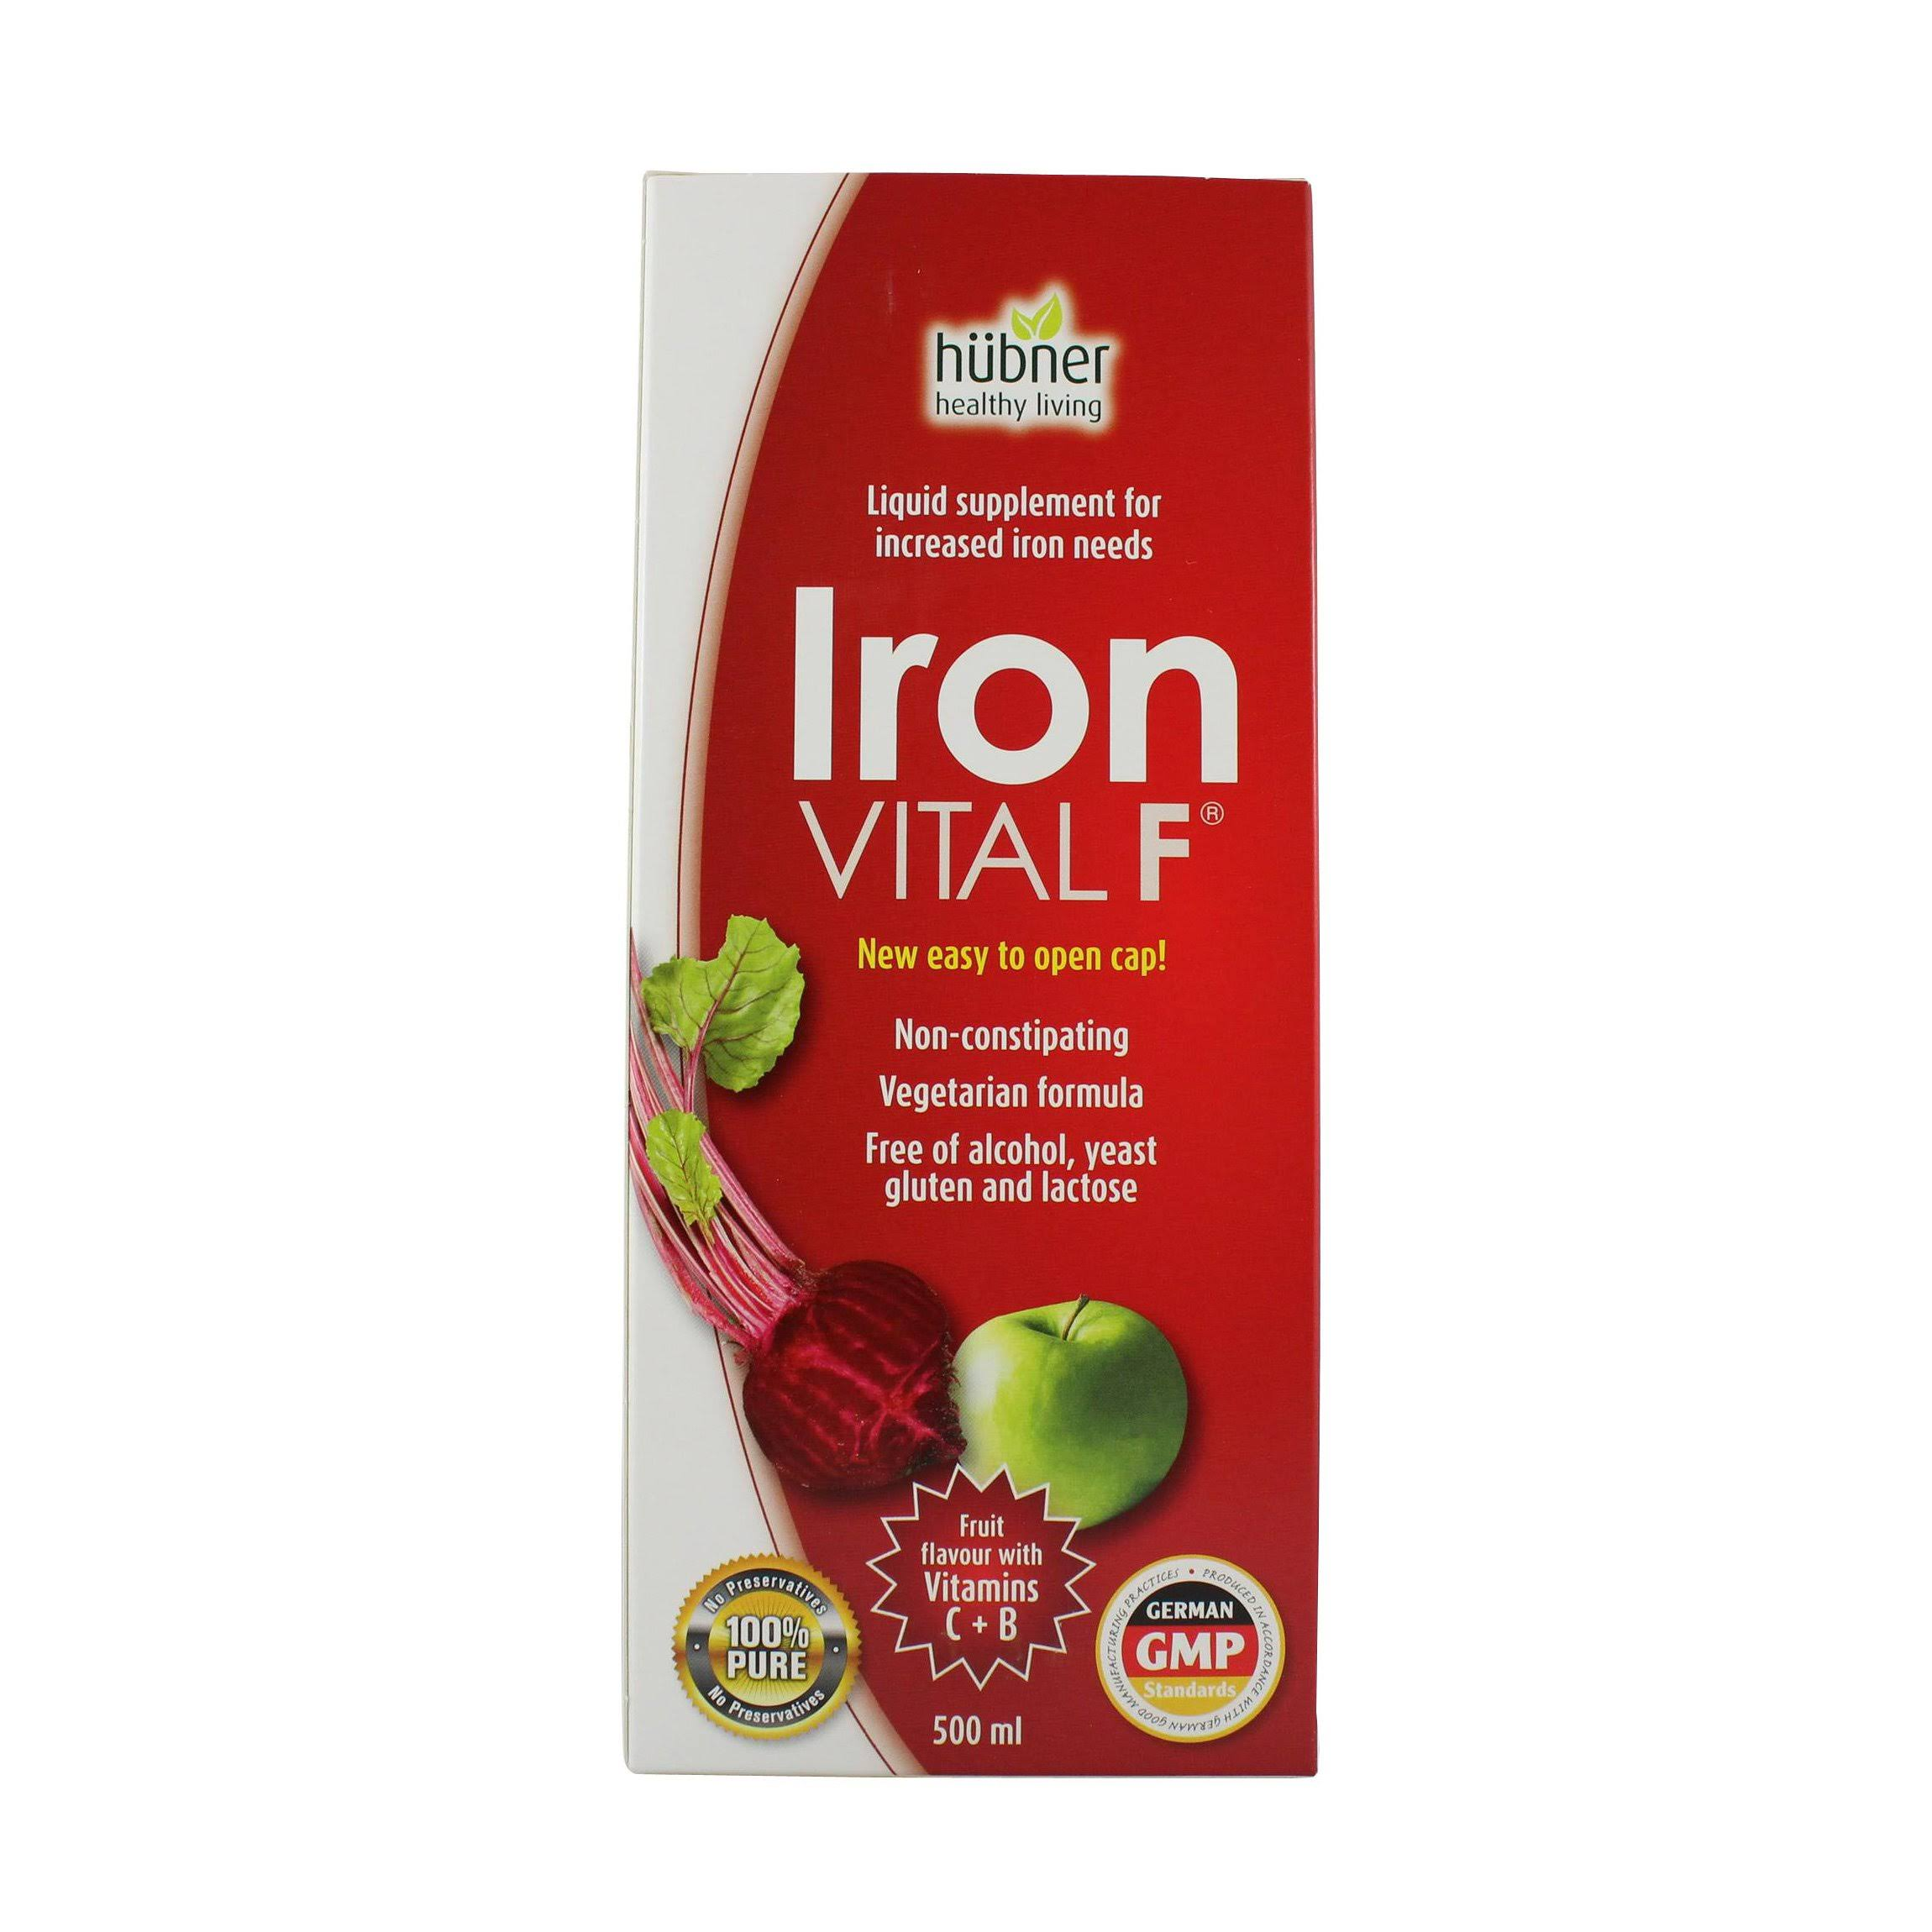 Hubner Iron Vital F Iron Supplement - 500ml